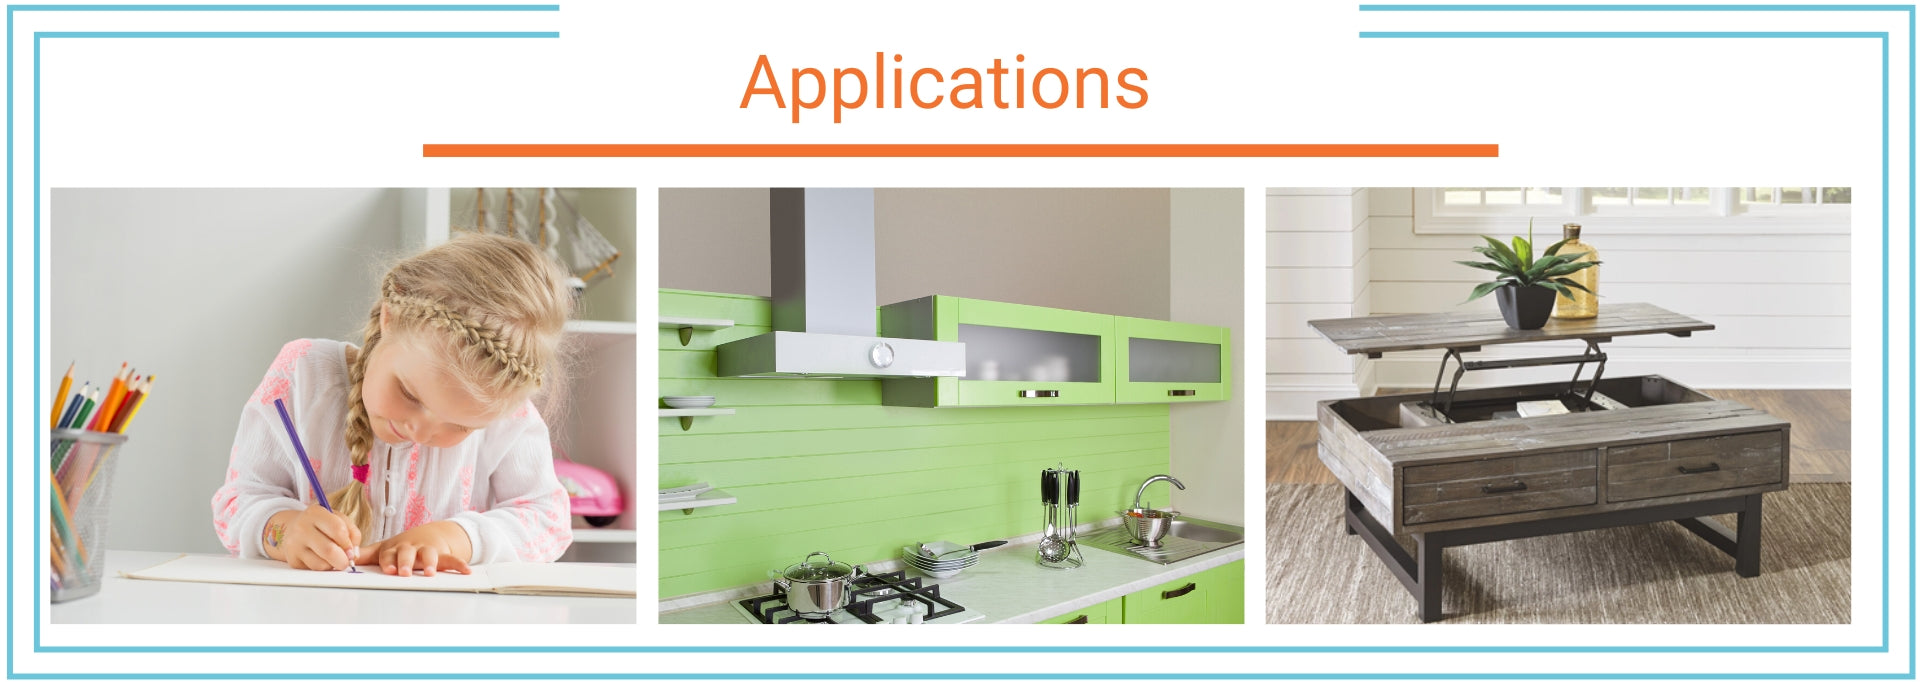 Table lifts applications